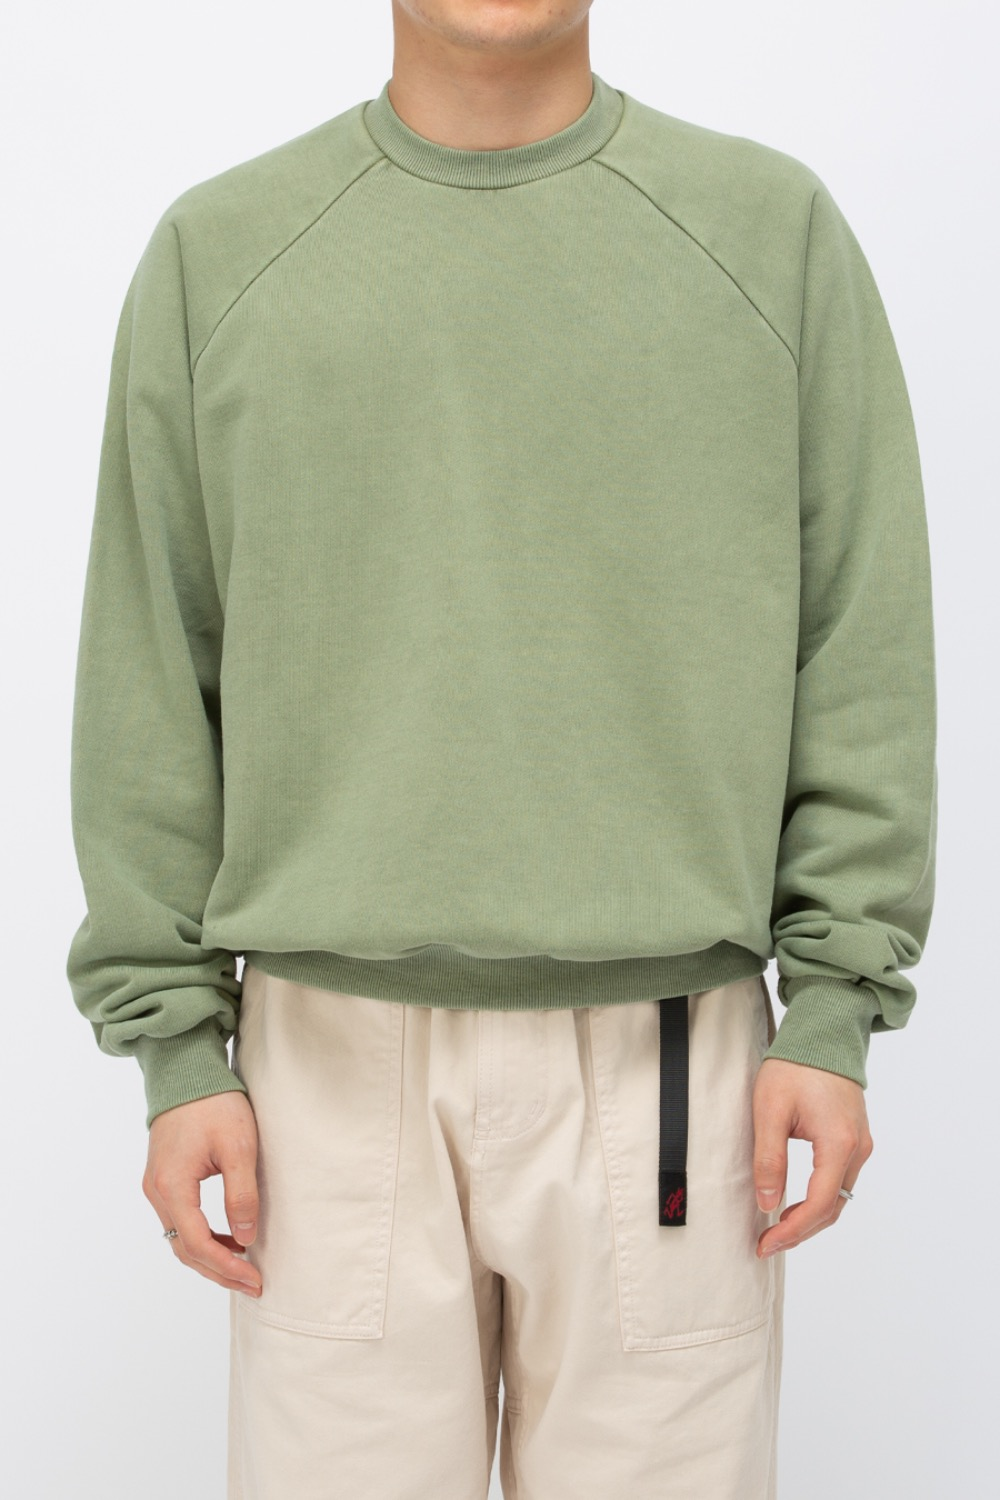 HEAVY WEIGHT OVERSIZE SWEATSHIRT WASHED(PREMIUM BASIC) GREEN